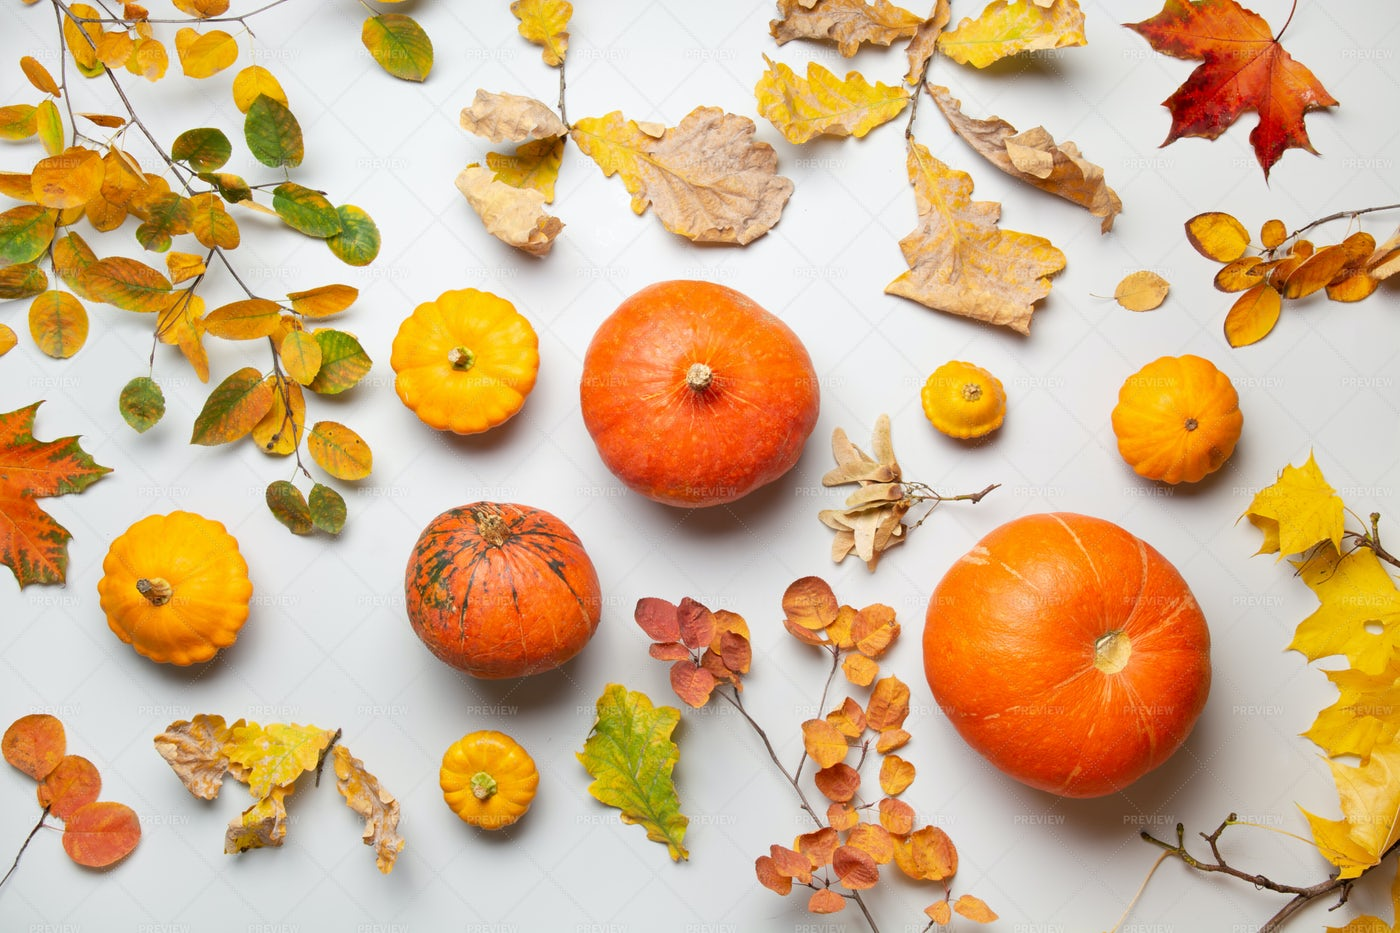 Pumpkins And Autumn Leaves: Stock Photos